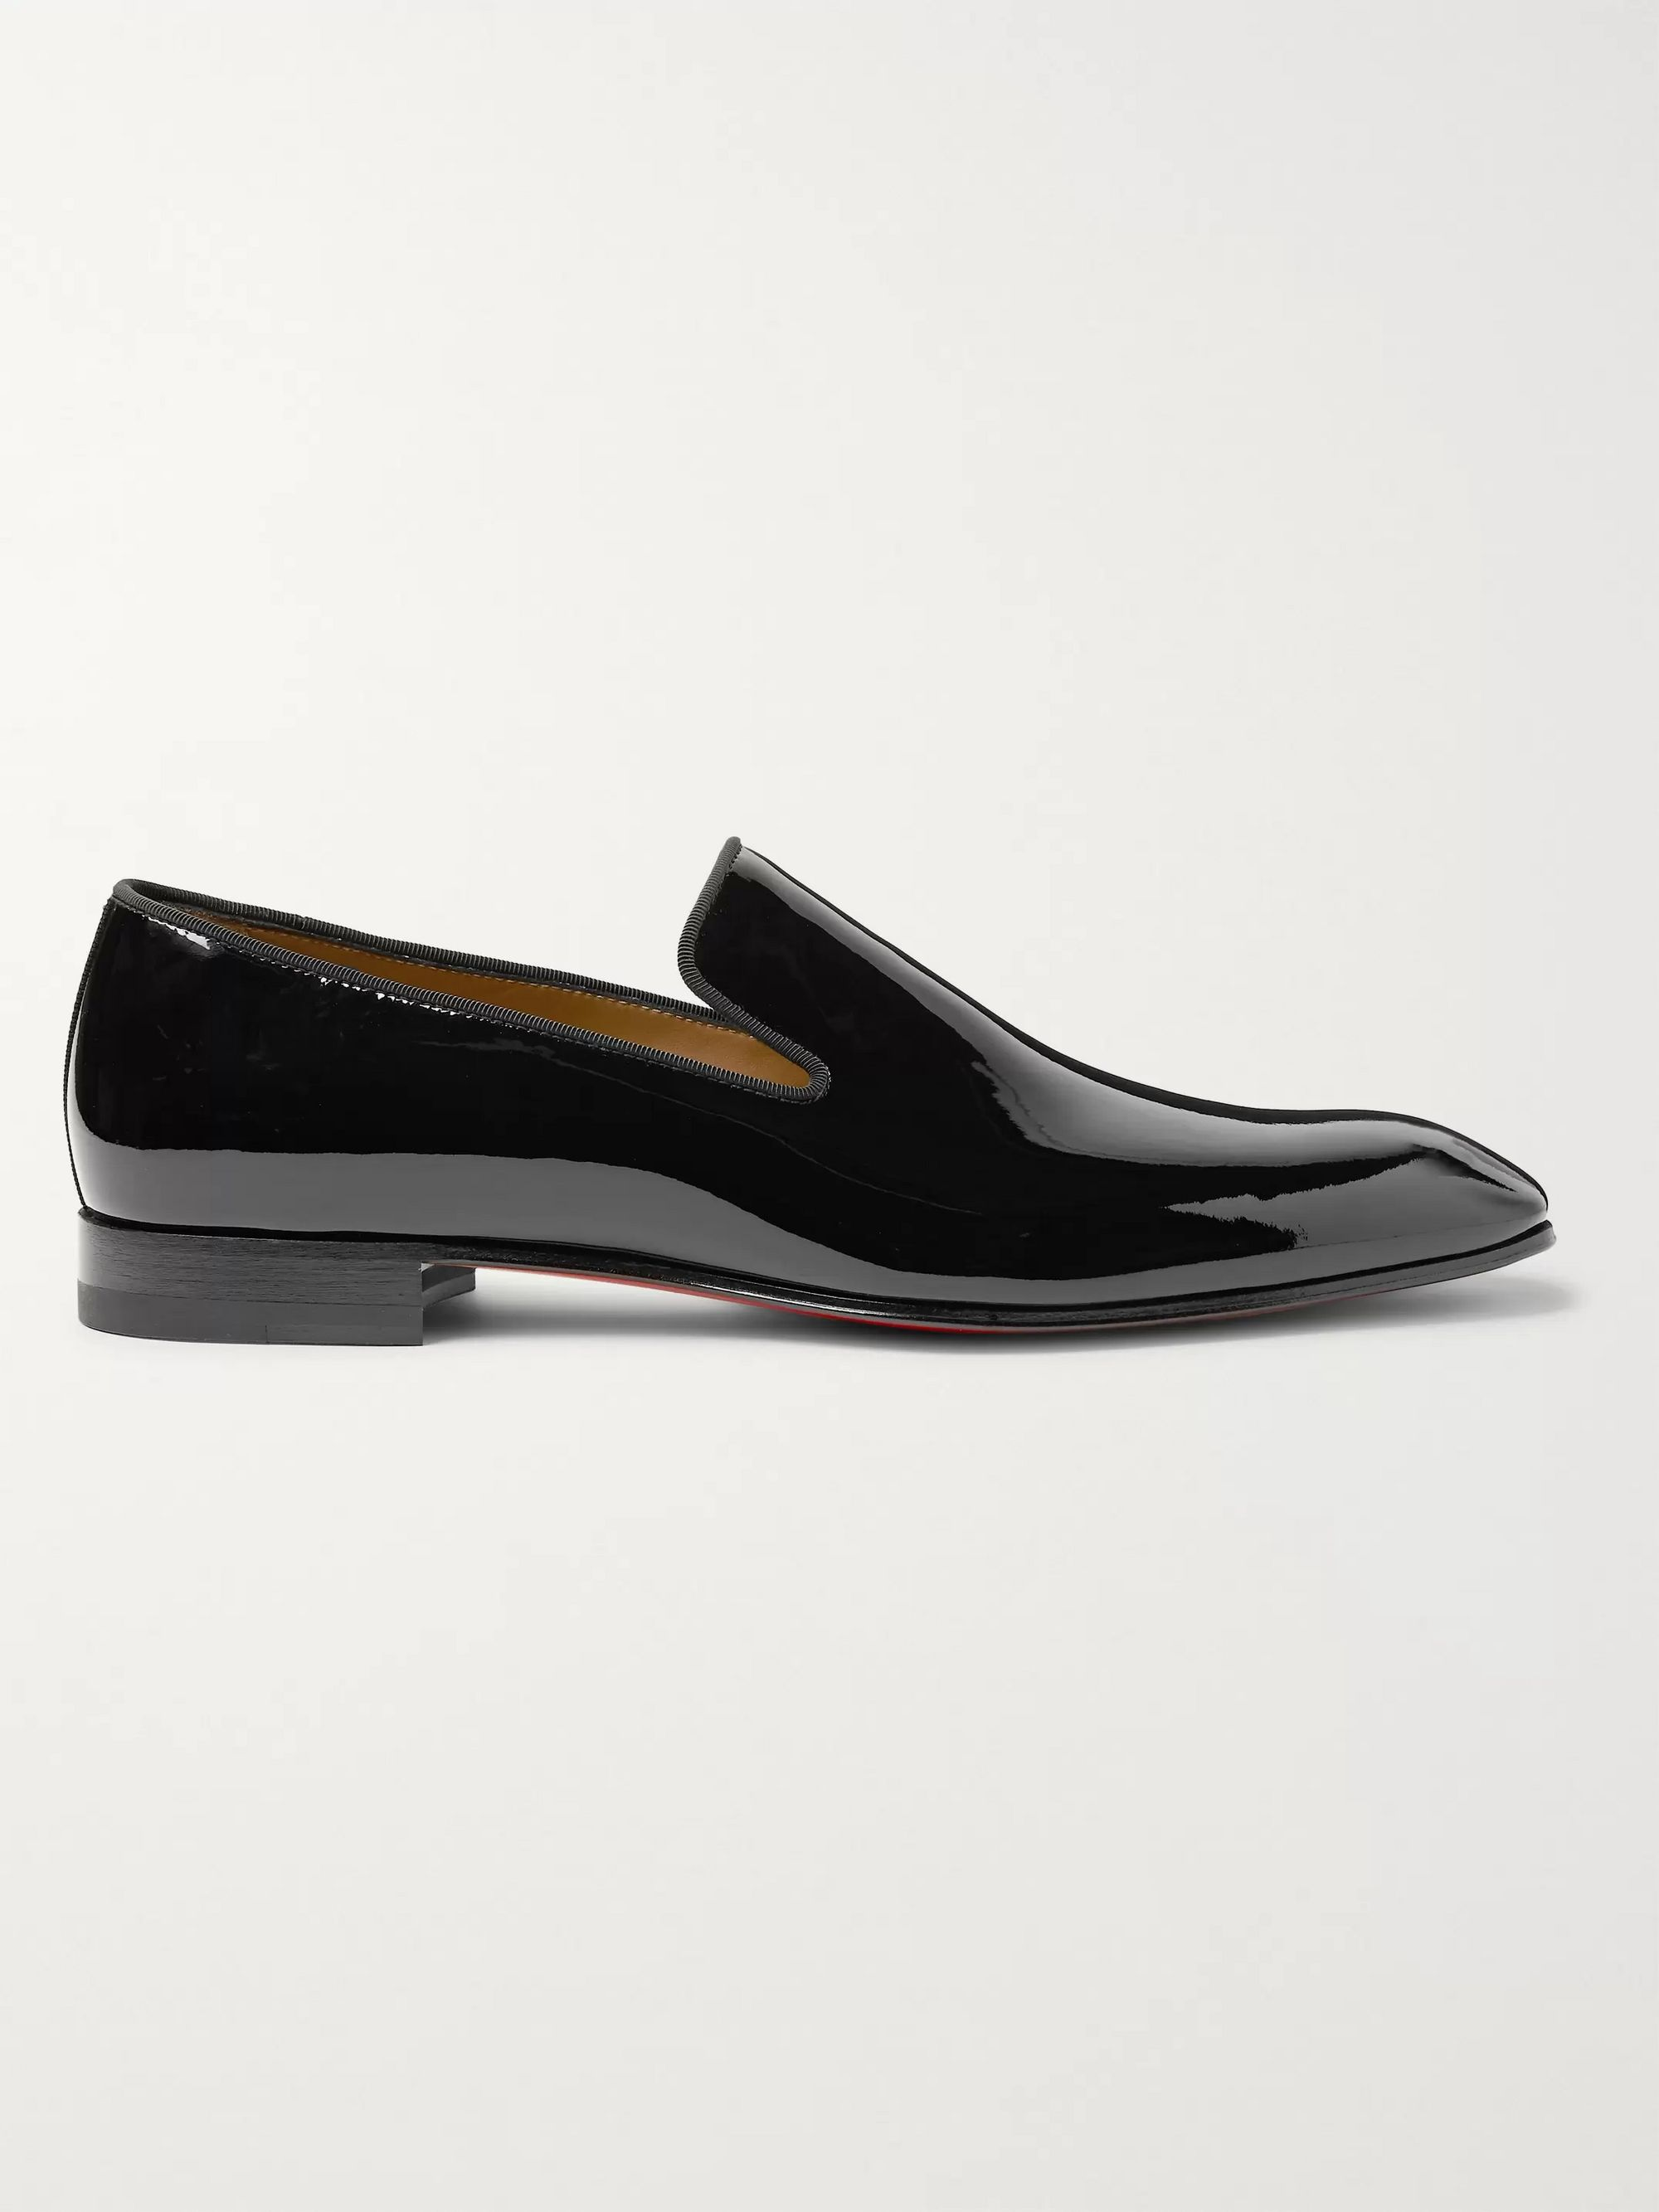 Christian Louboutin Dandelion Grosgrain-Trimmed Patent-Leather Loafers